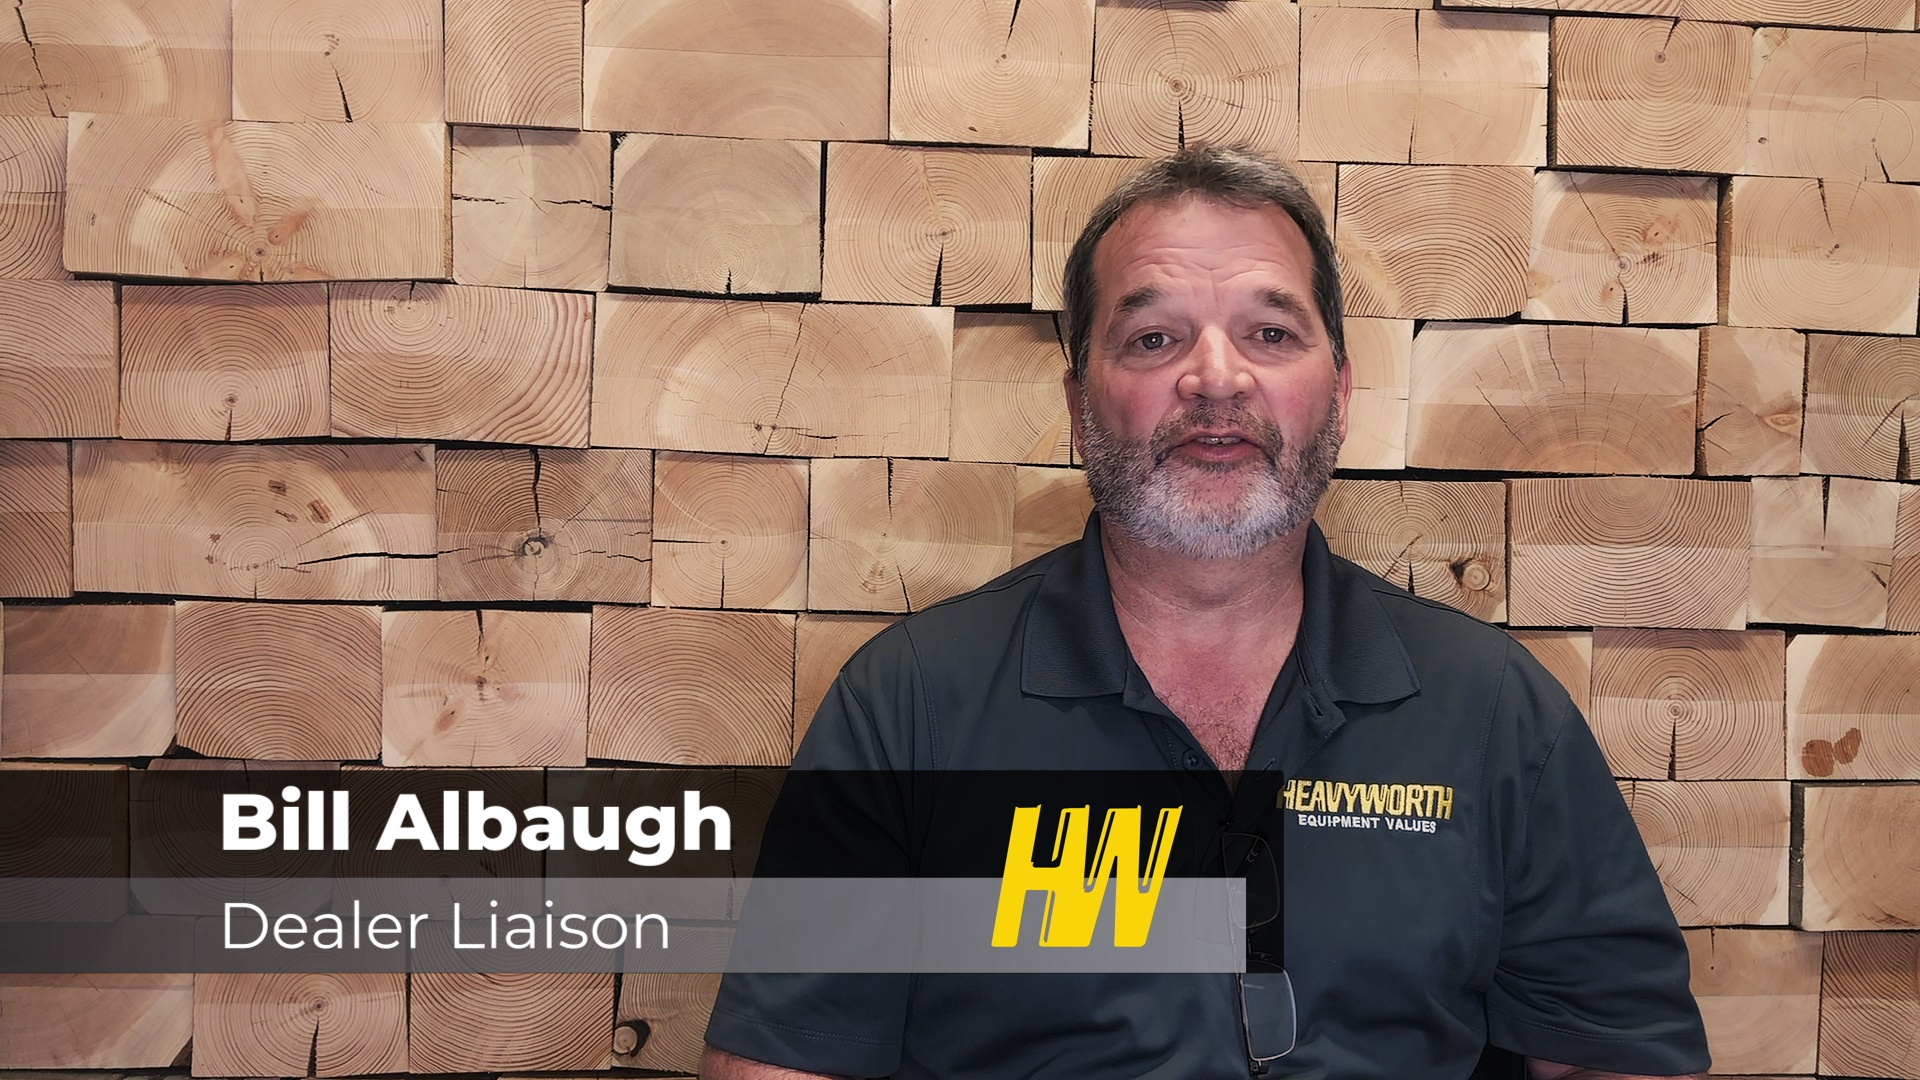 Bill Albaugh explains why it's crucial for lending institutions to maintain current and accurate valuations for the collateral behind equipment loans.